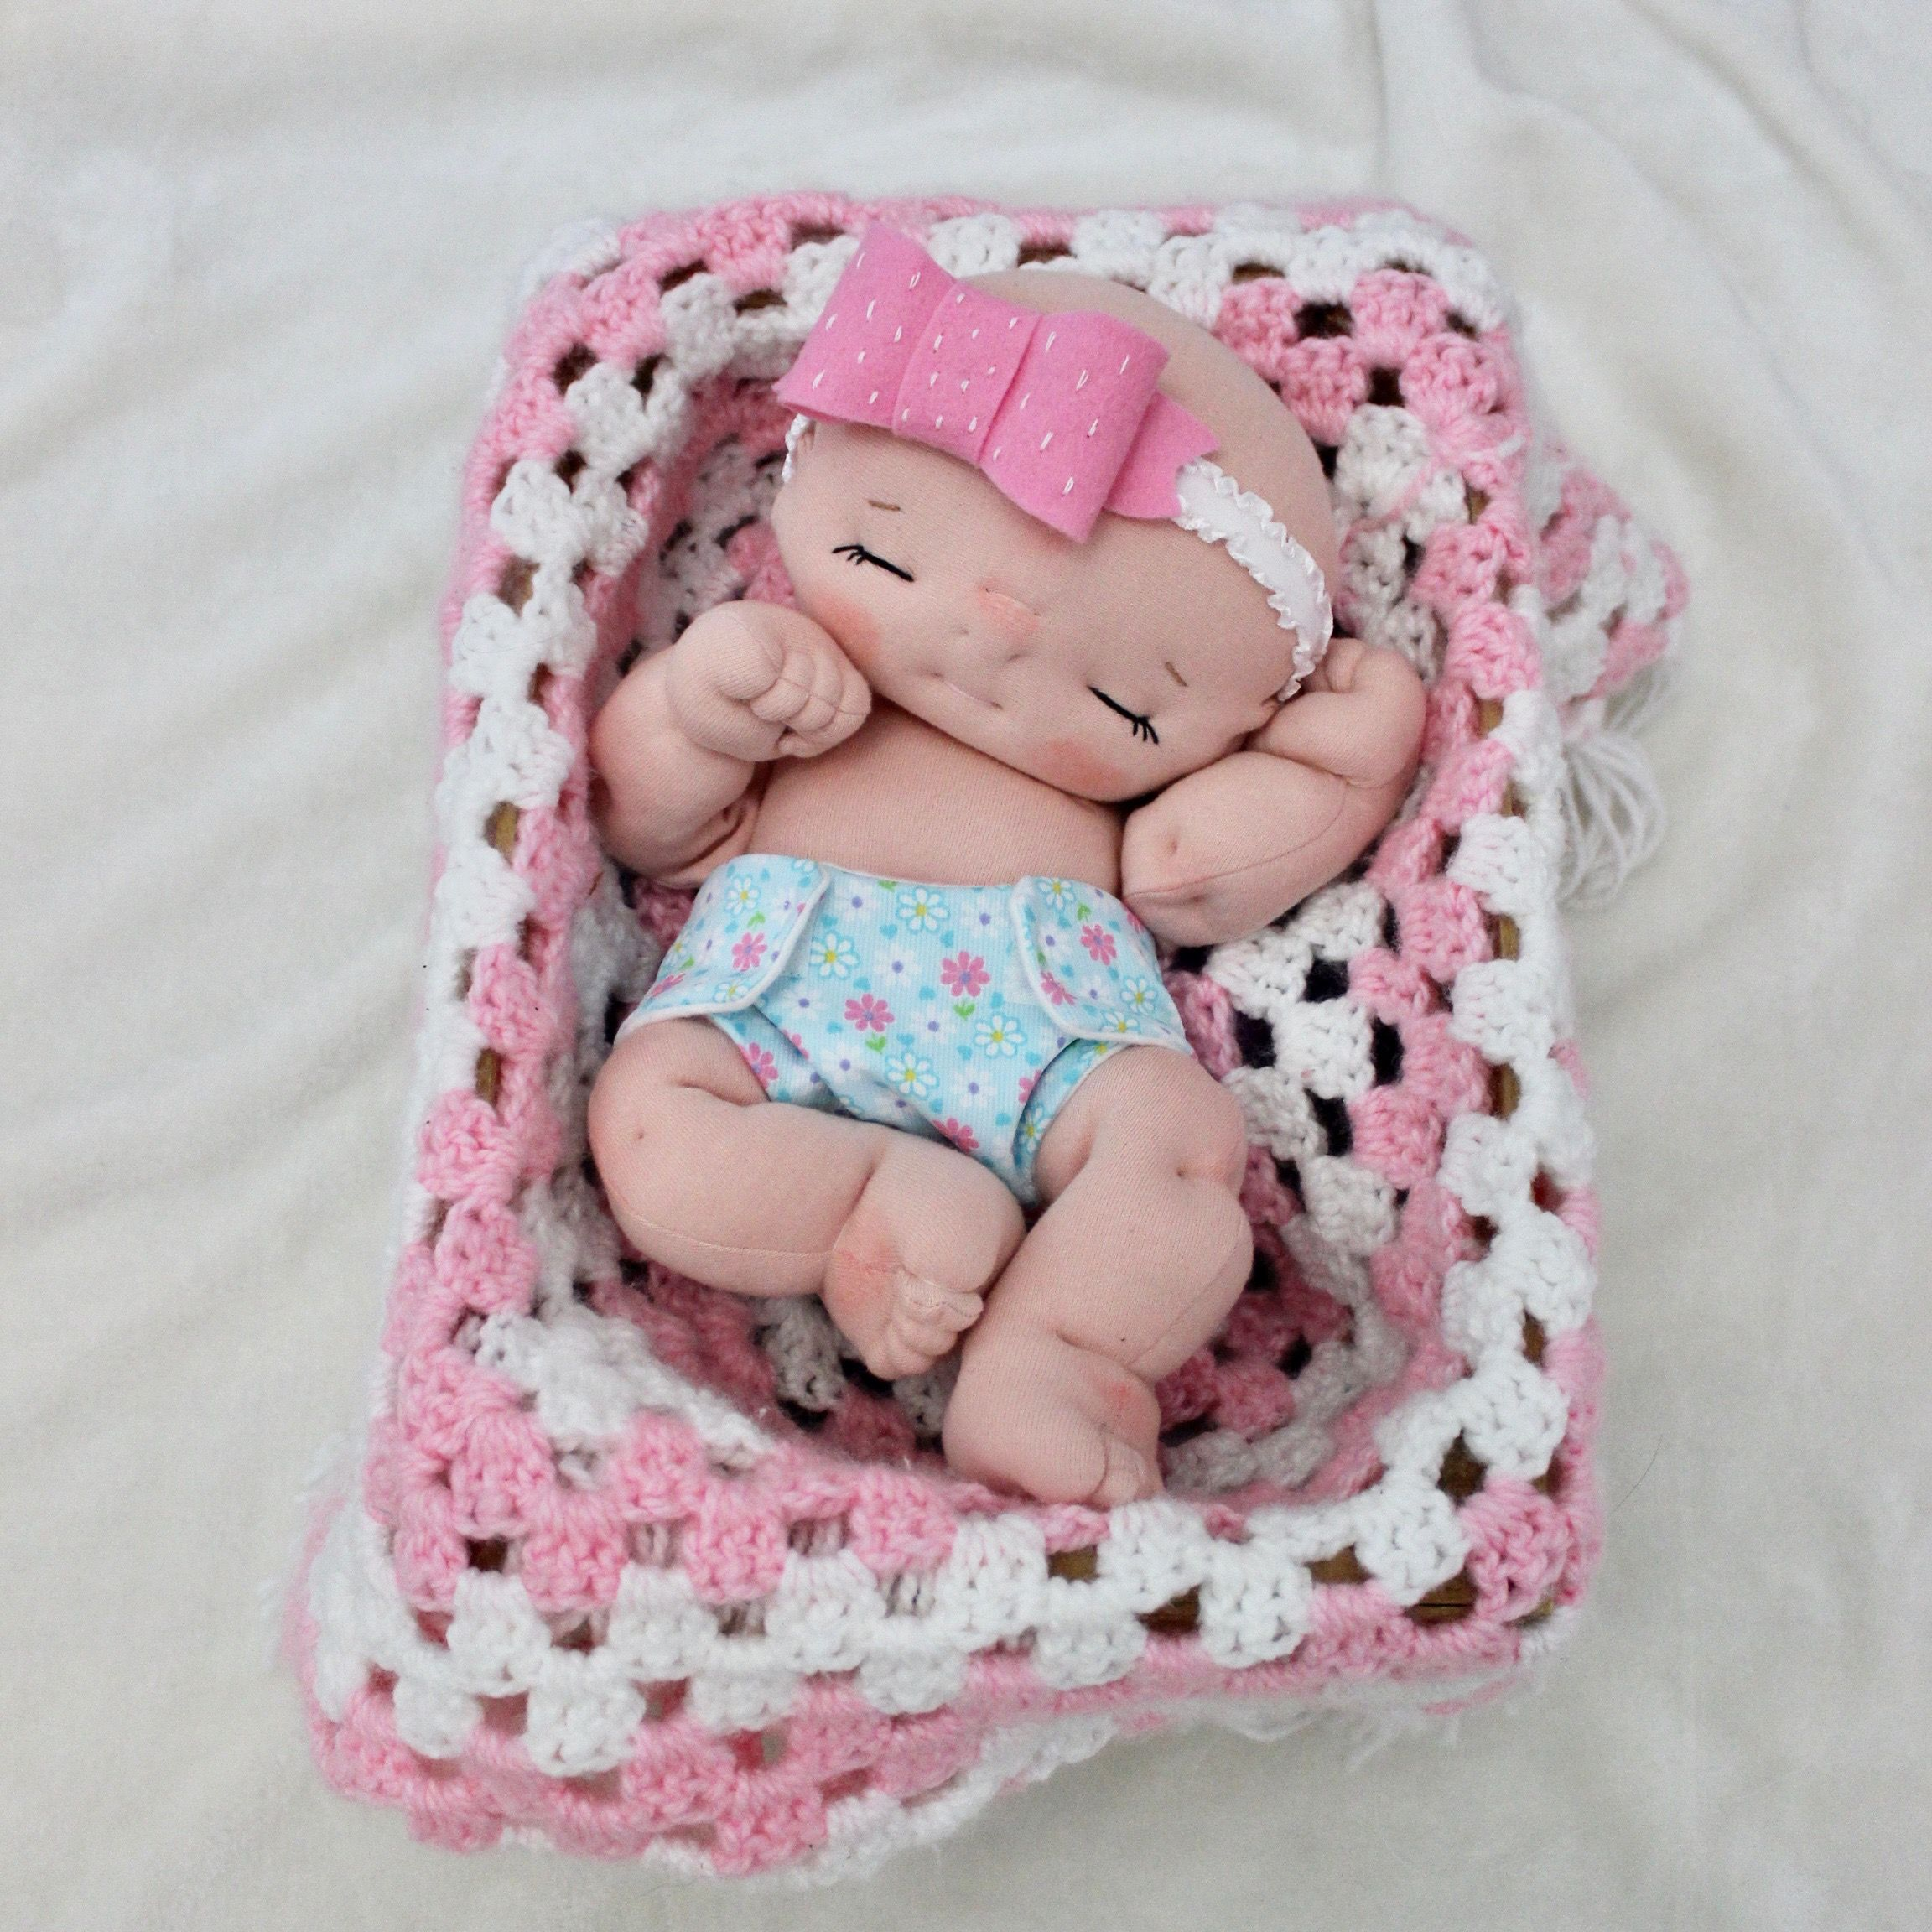 Custom 13 in fully soft sculpted cloth baby doll by Aubrey Barbosa